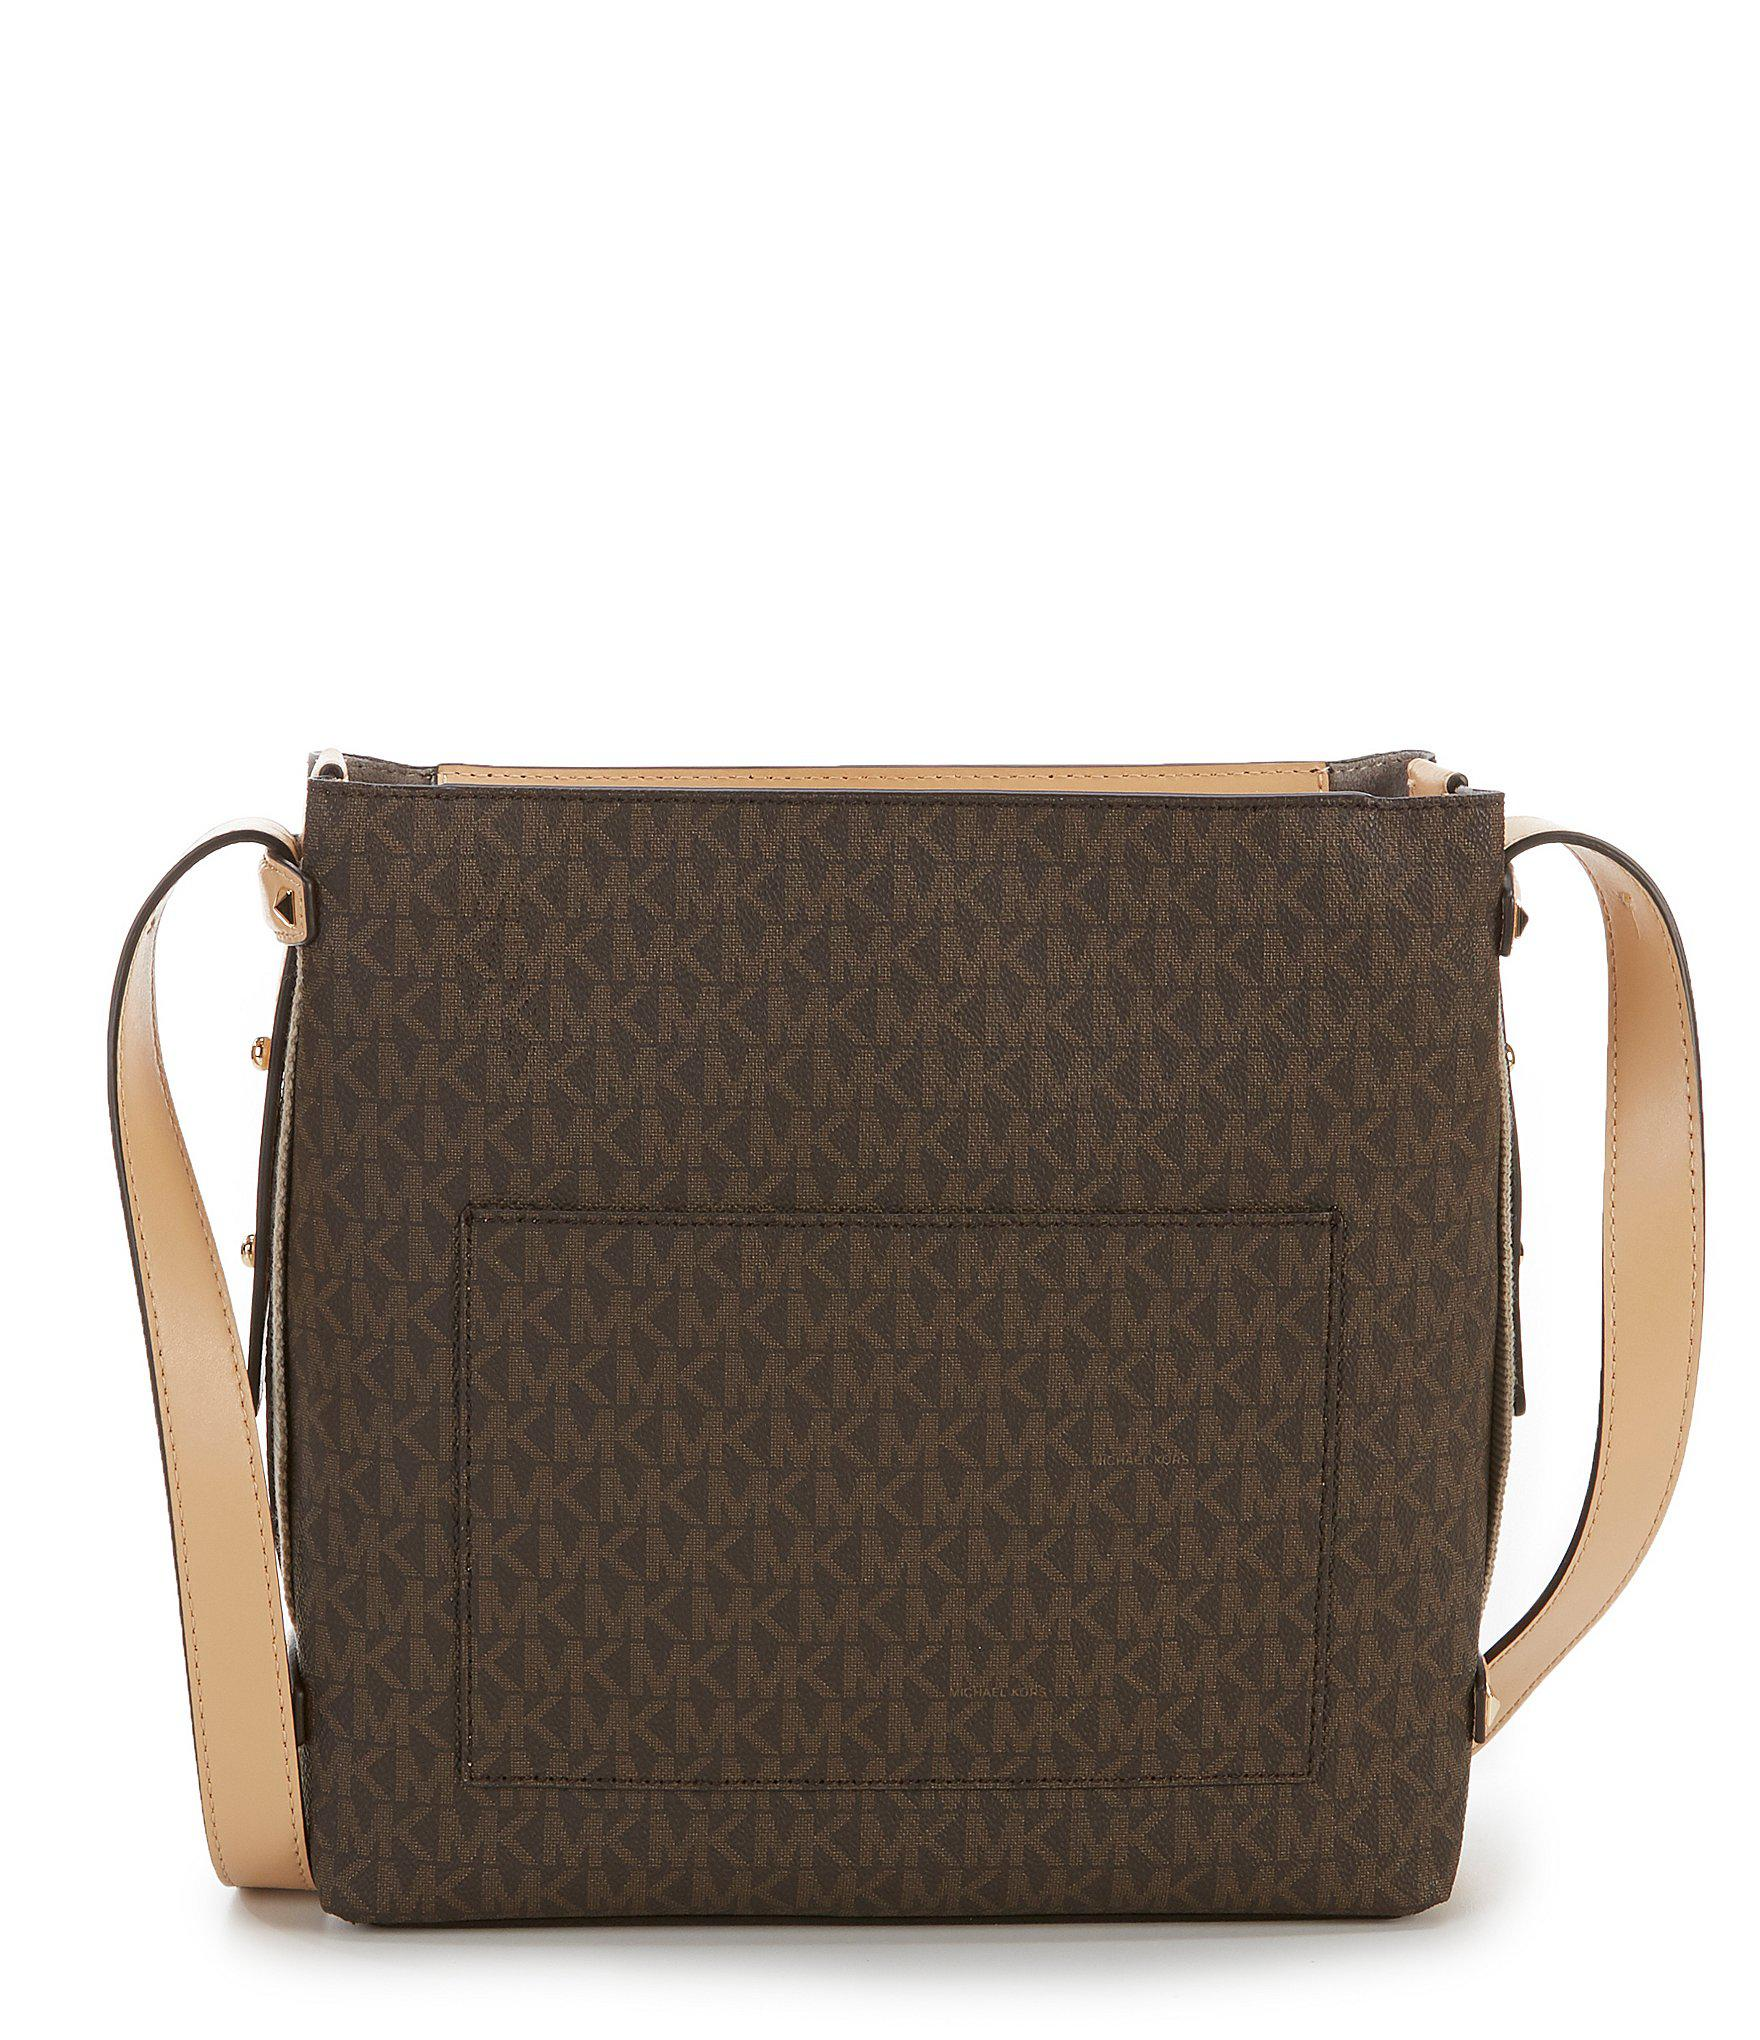 d0e35358b9 Gallery. Previously sold at  Dillard s · Women s Cross Body Bags ...